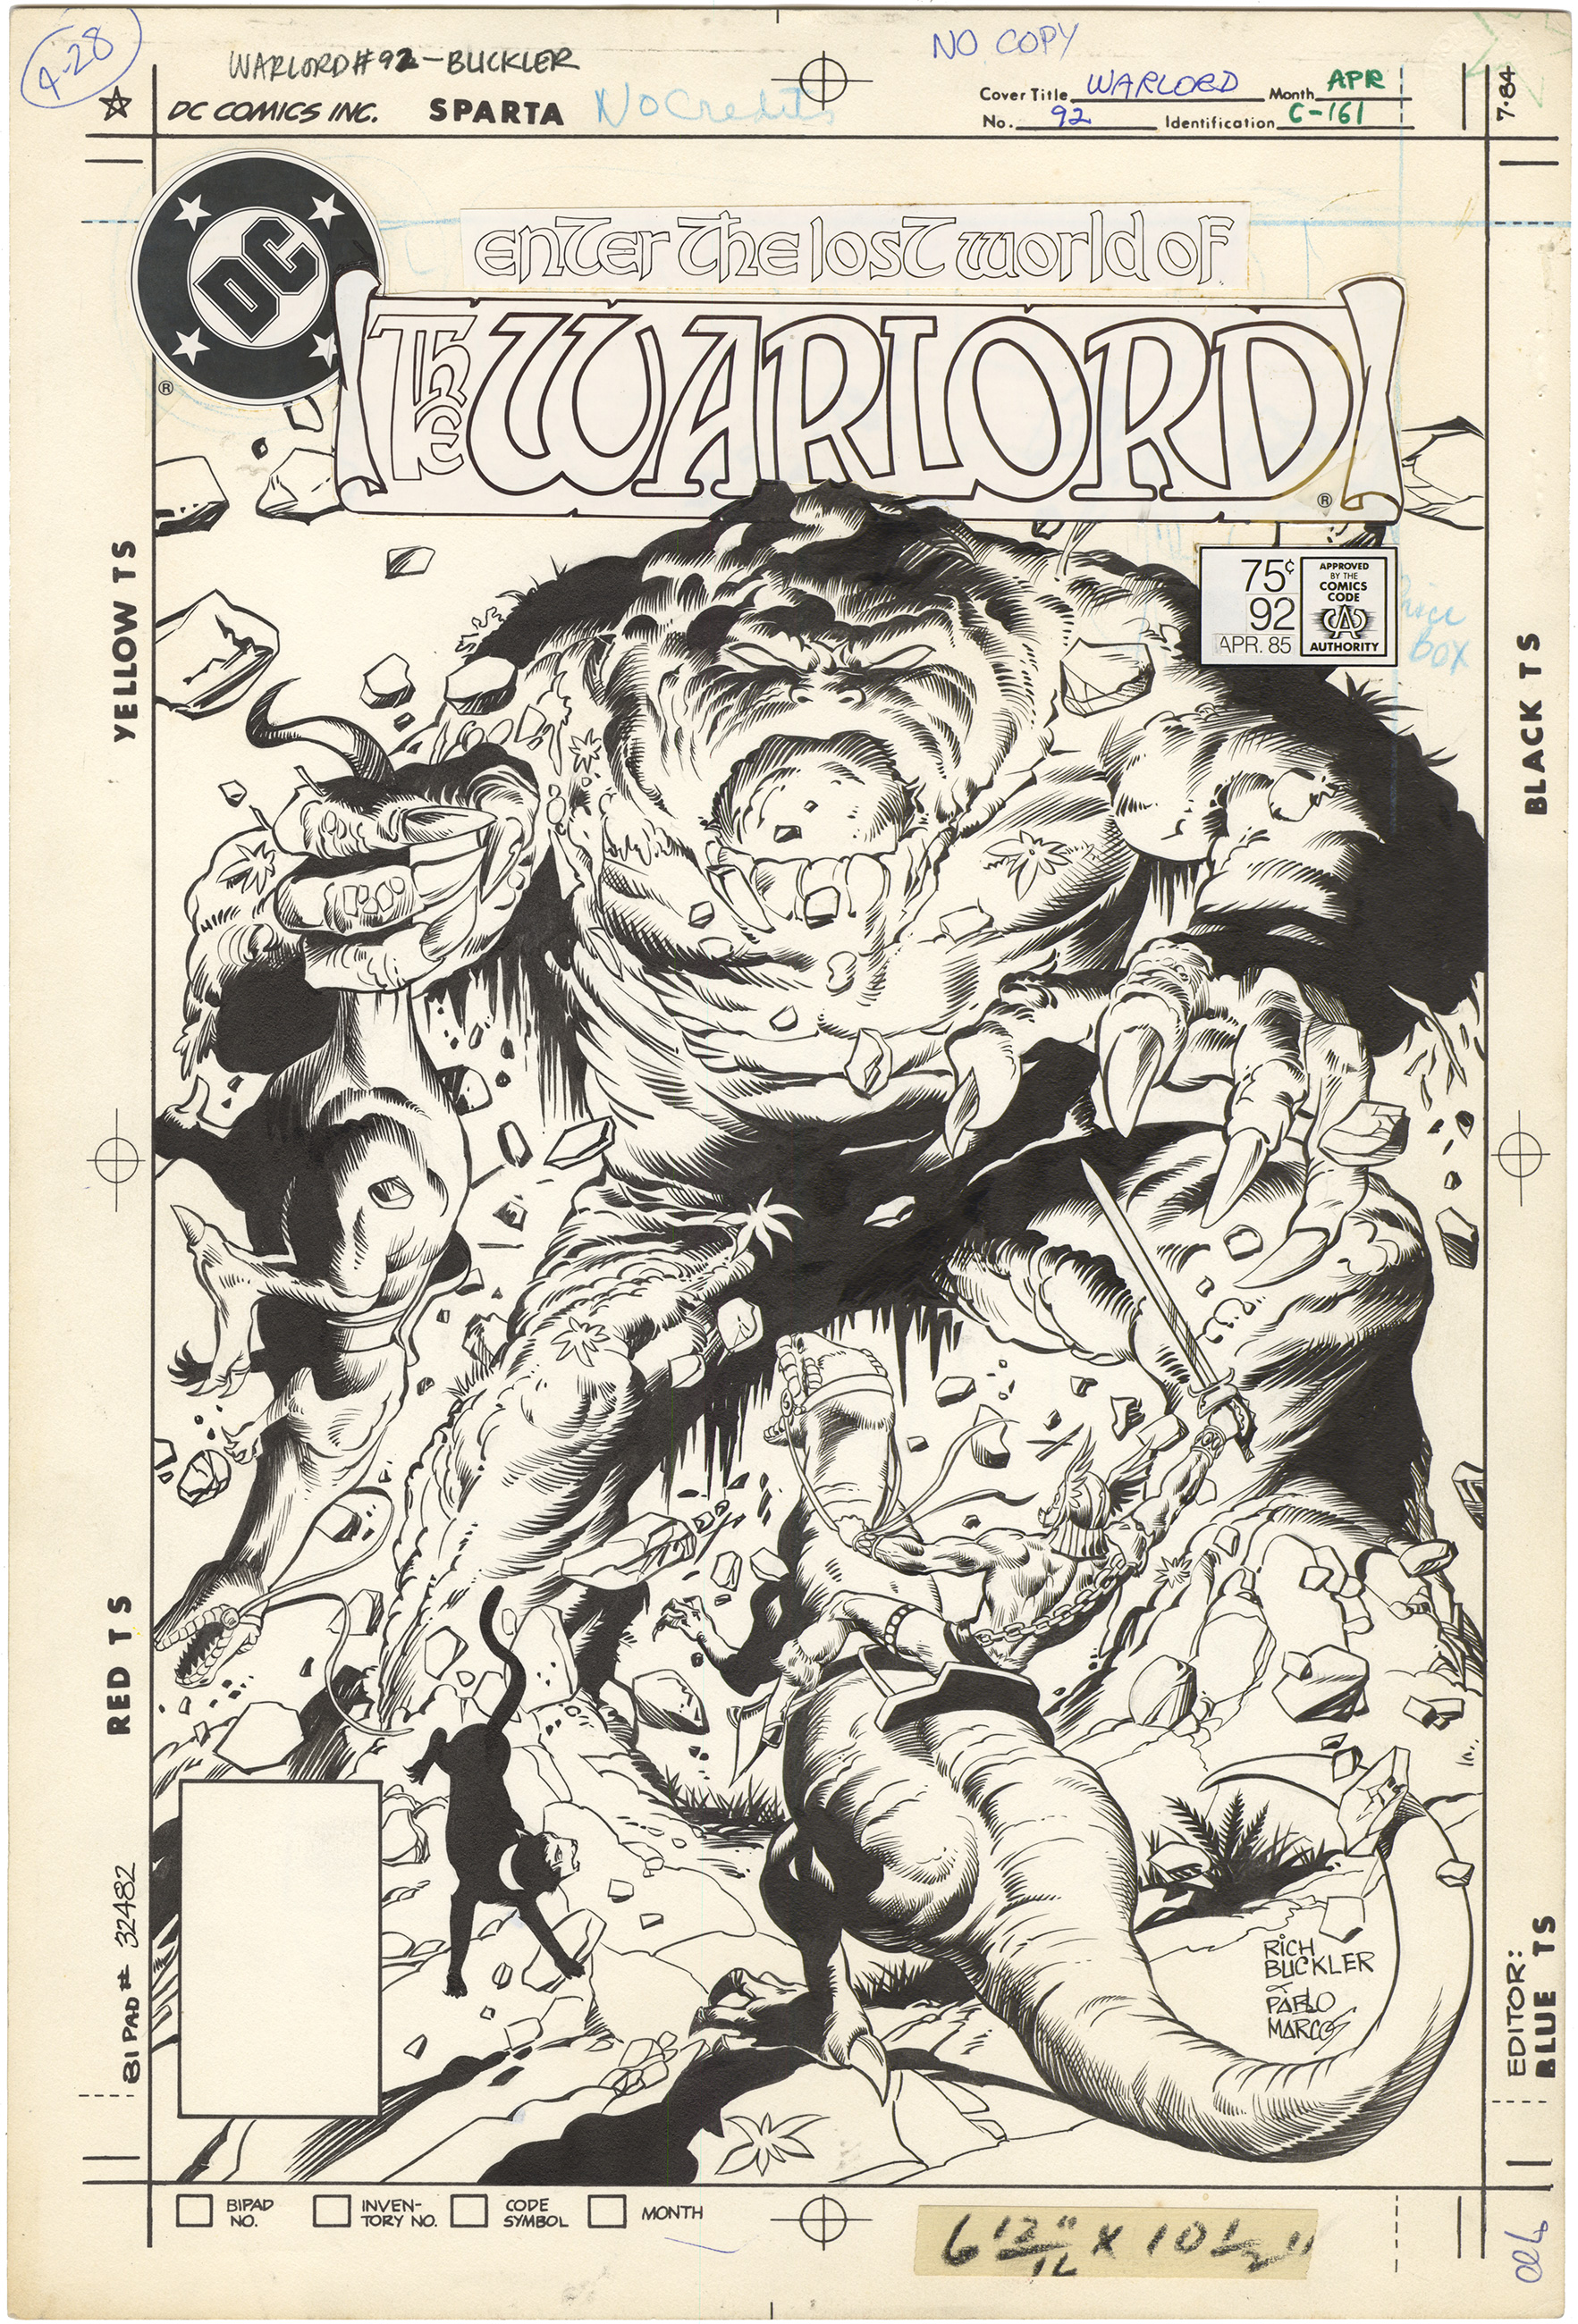 Warlord #92 Cover